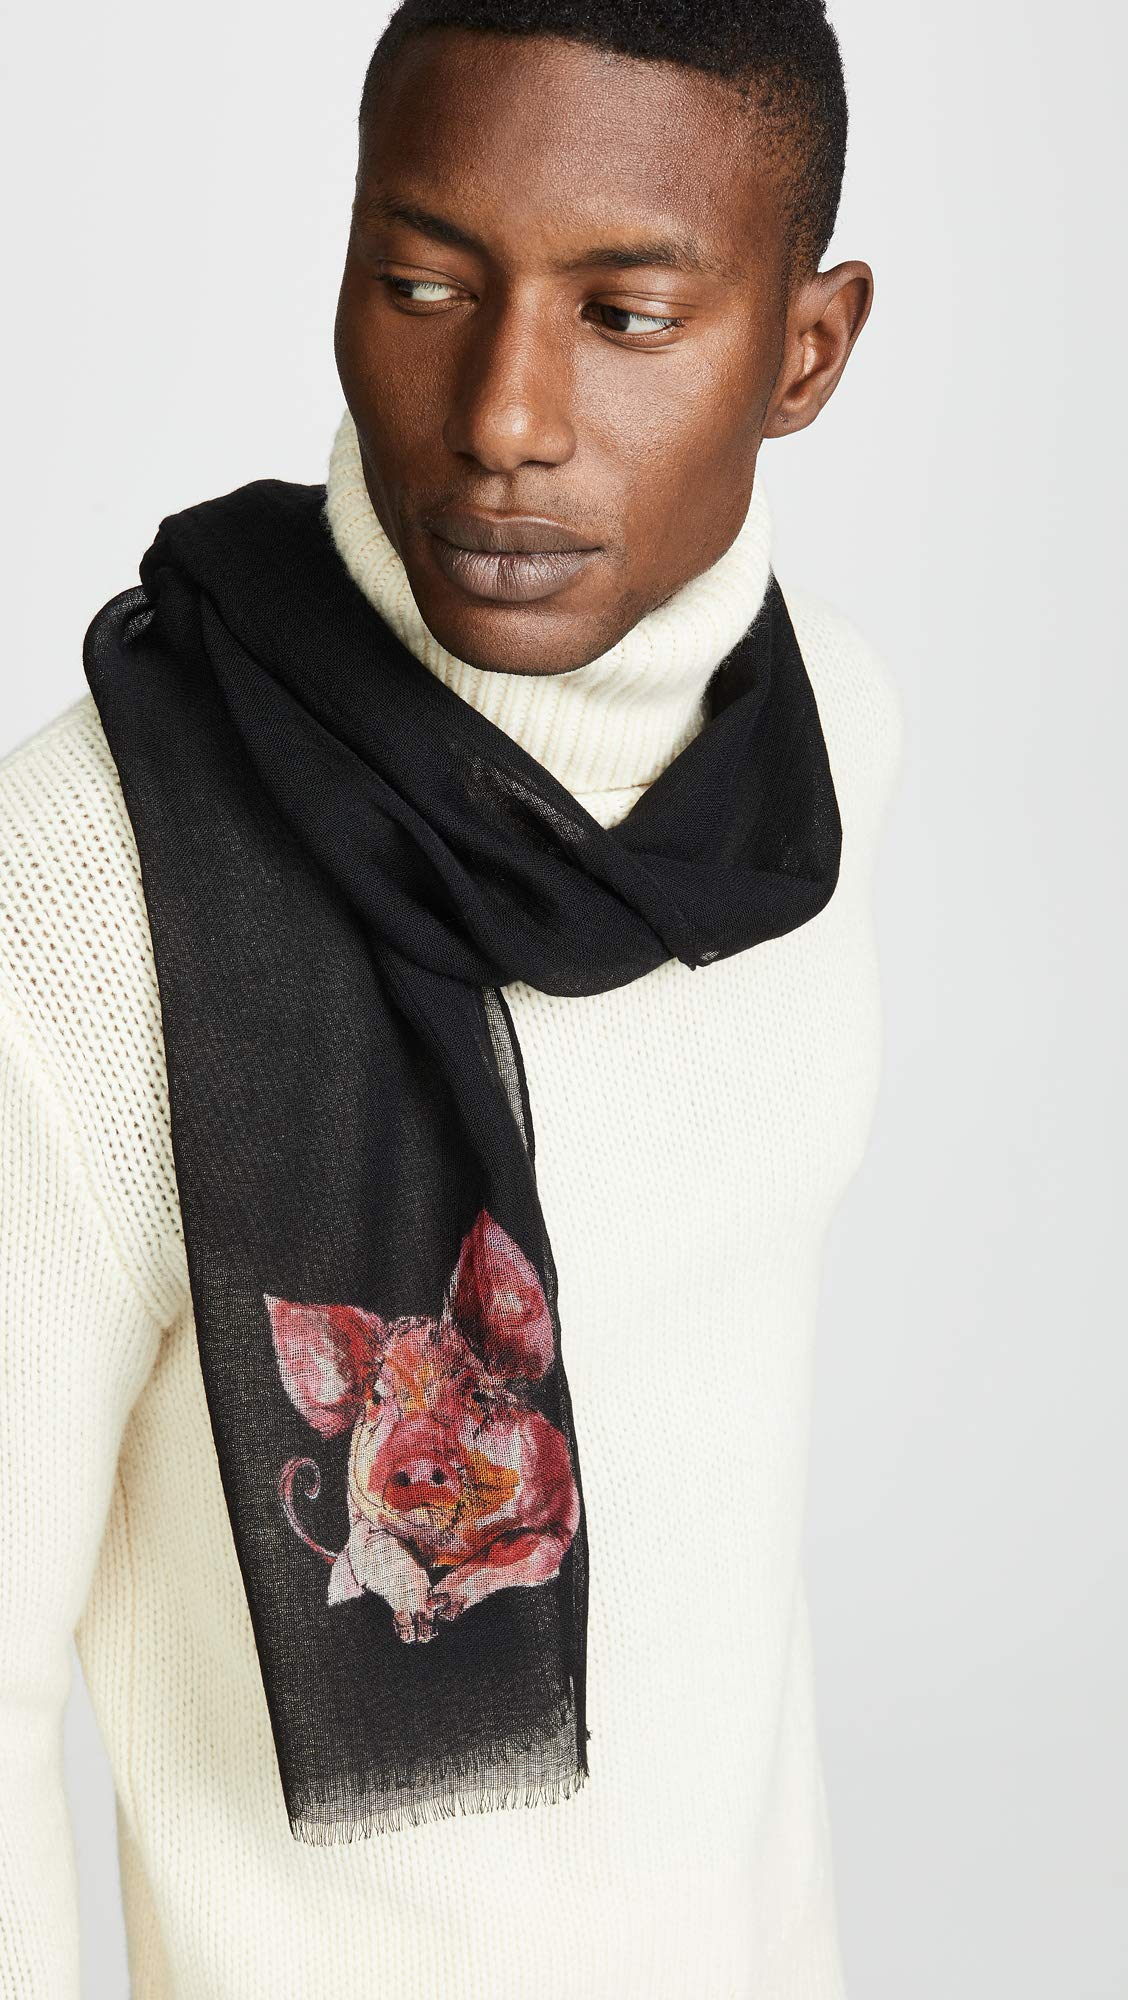 Paul Smith Men's Pig Scarf, Black, One Size by Paul Smith (Image #2)